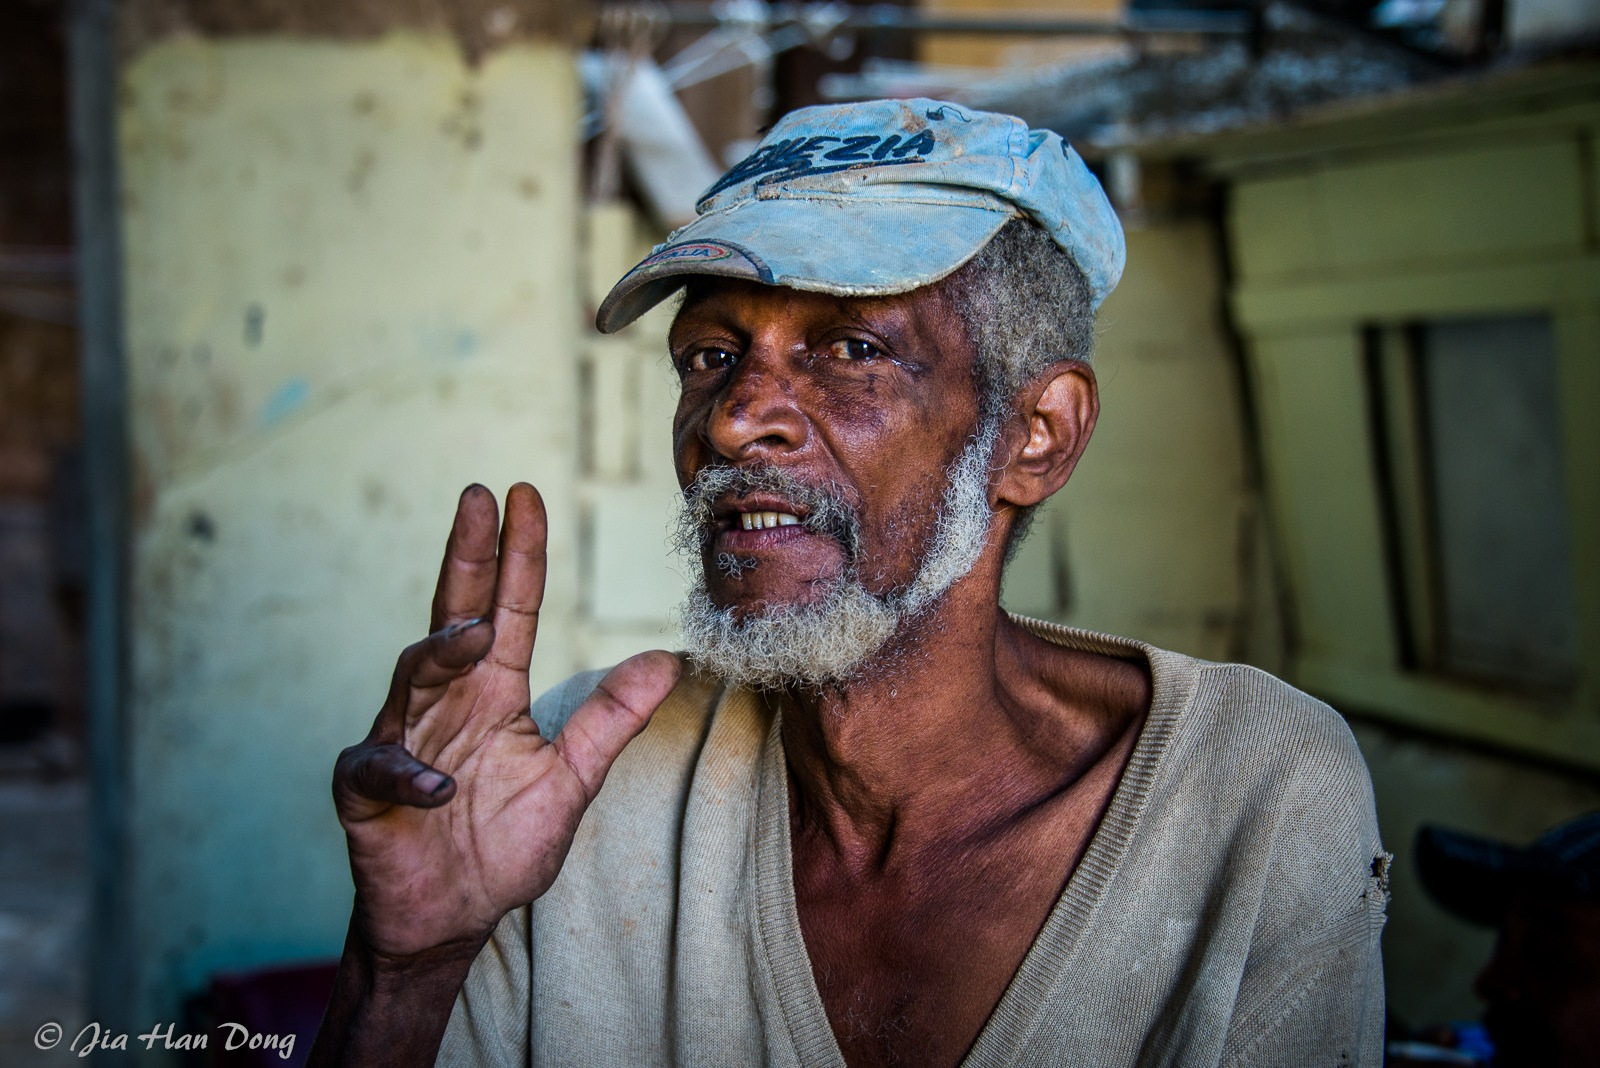 Portrait from Cuba by Jiahan Dong